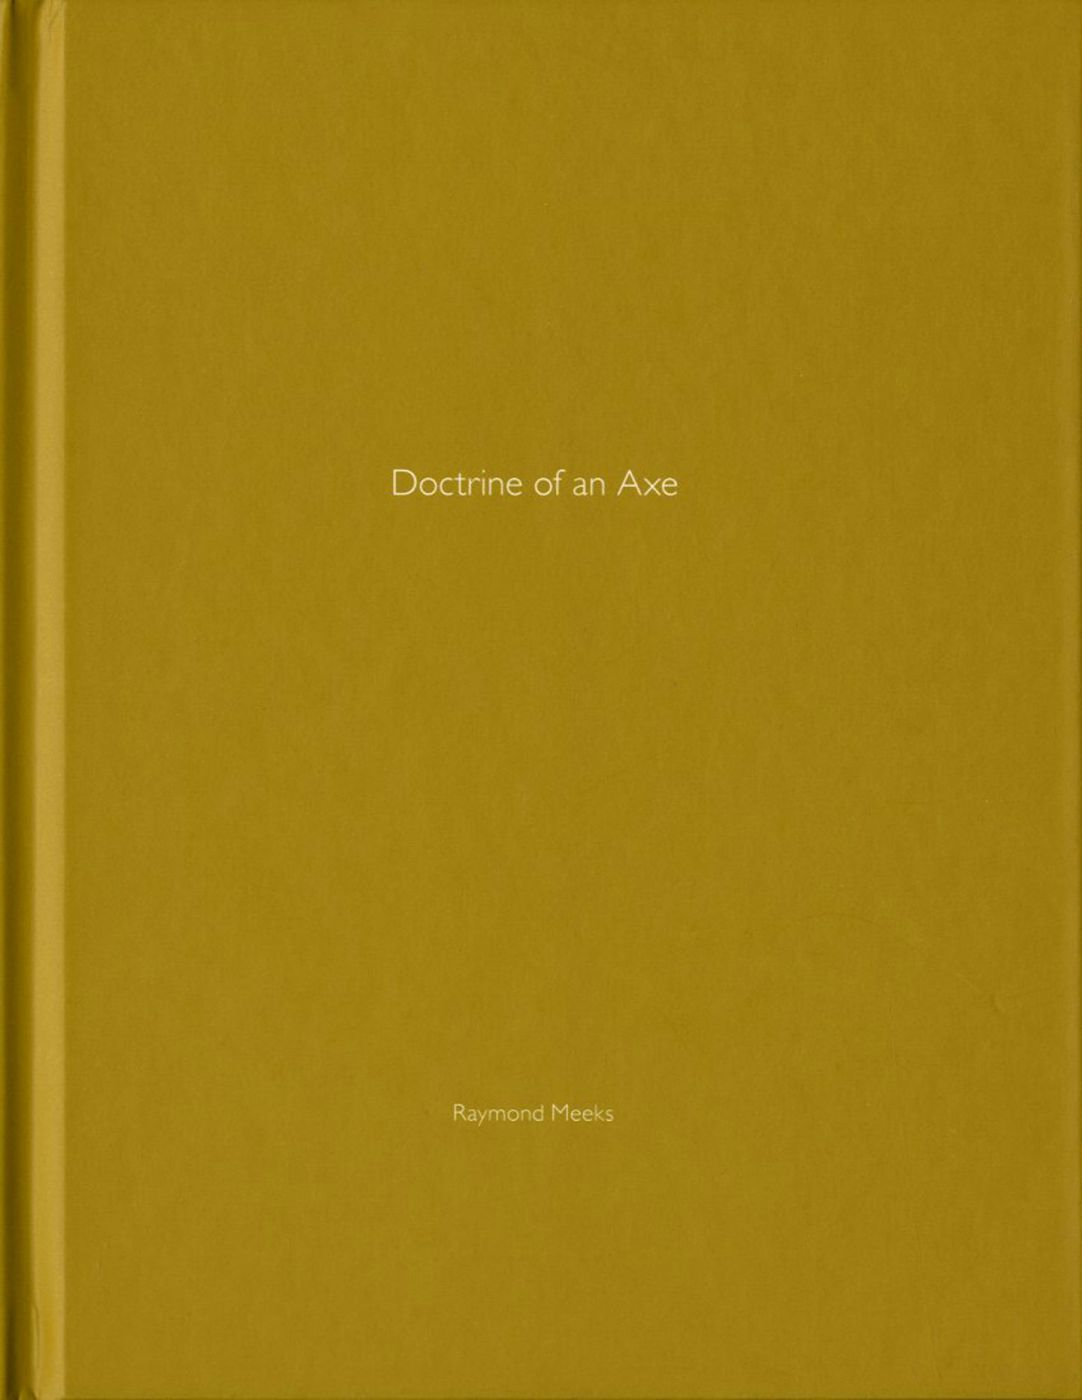 Raymond Meeks: Doctrine of an Axe (One Picture Book #54), Limited Edition (with Print)